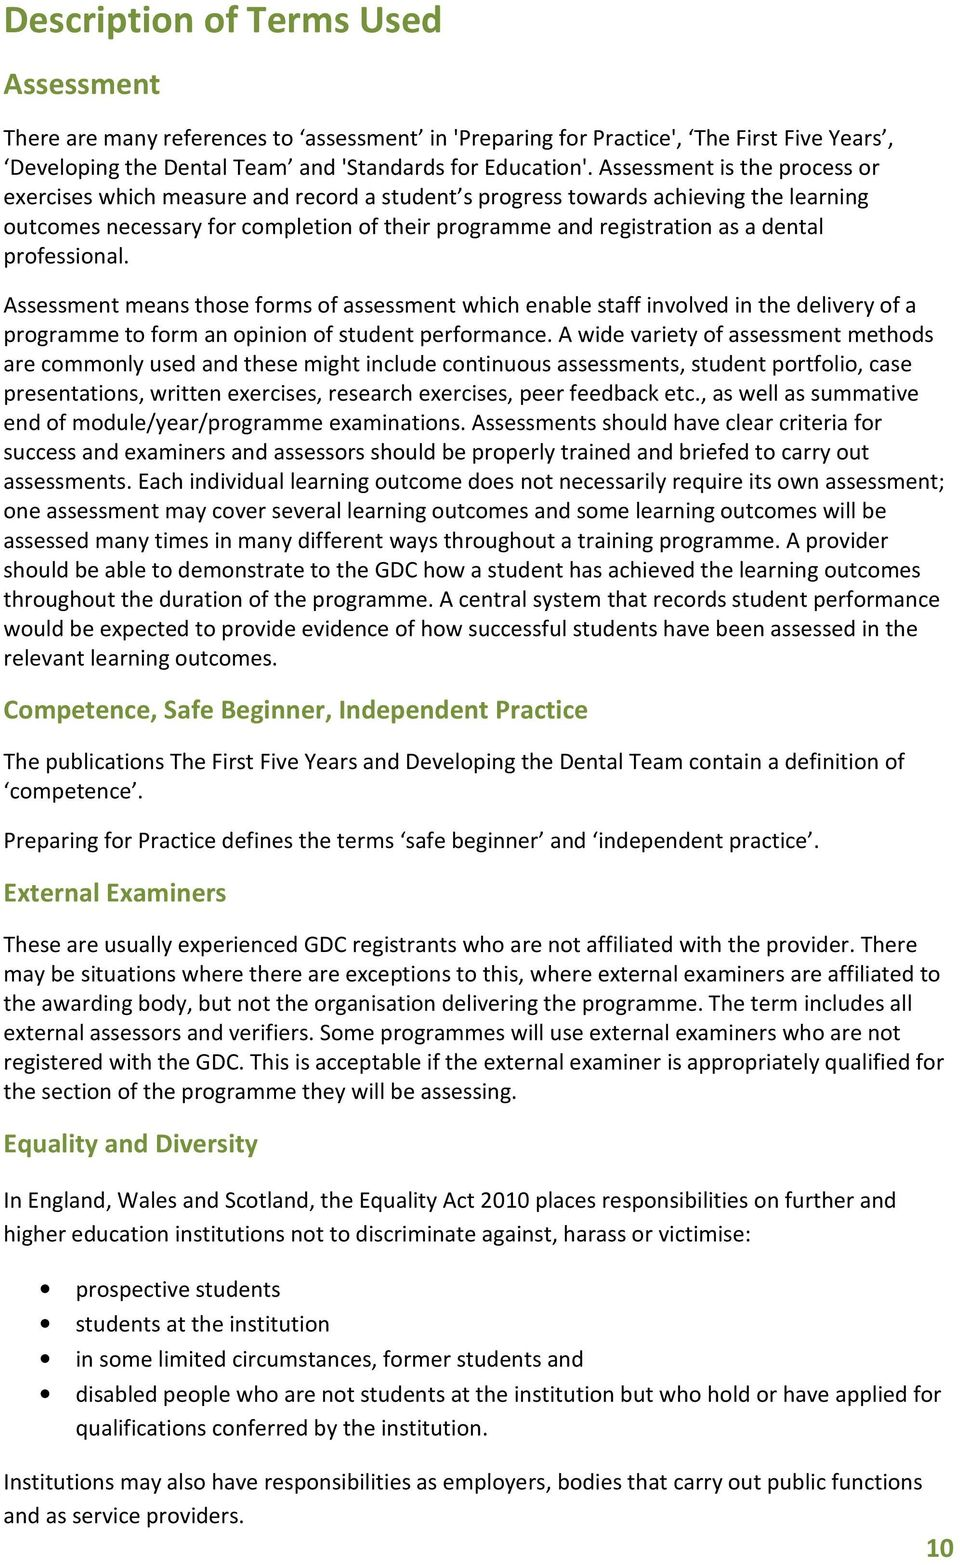 professional. Assessment means those forms of assessment which enable staff involved in the delivery of a programme to form an opinion of student performance.